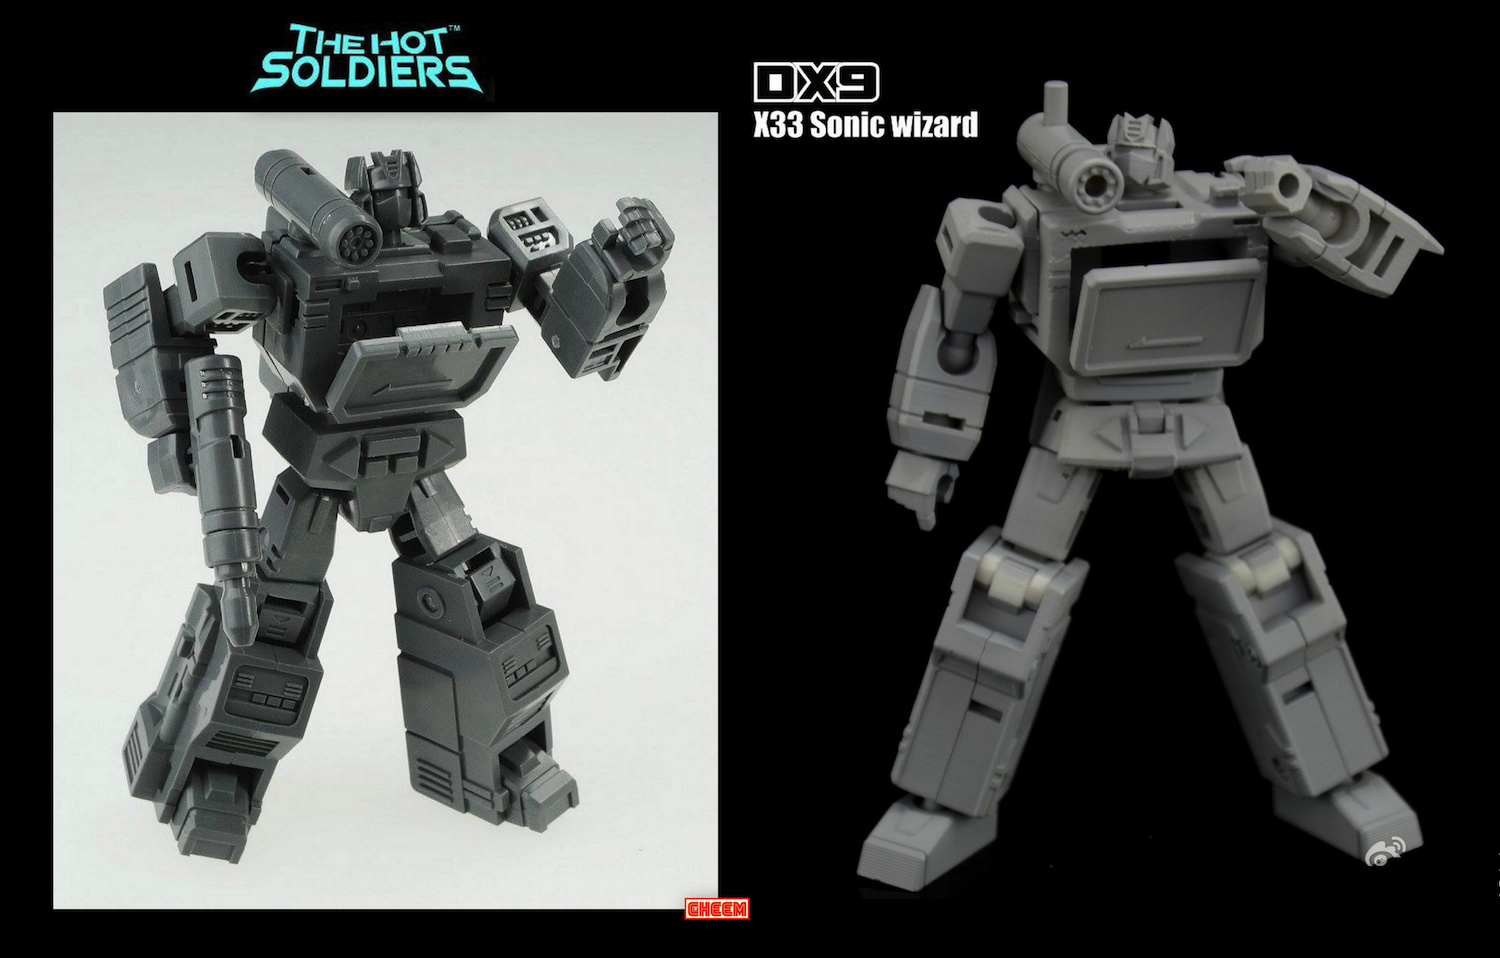 DX9 X33 Sonic Wizard (legend size not Soundwave) | TFW2005 - The